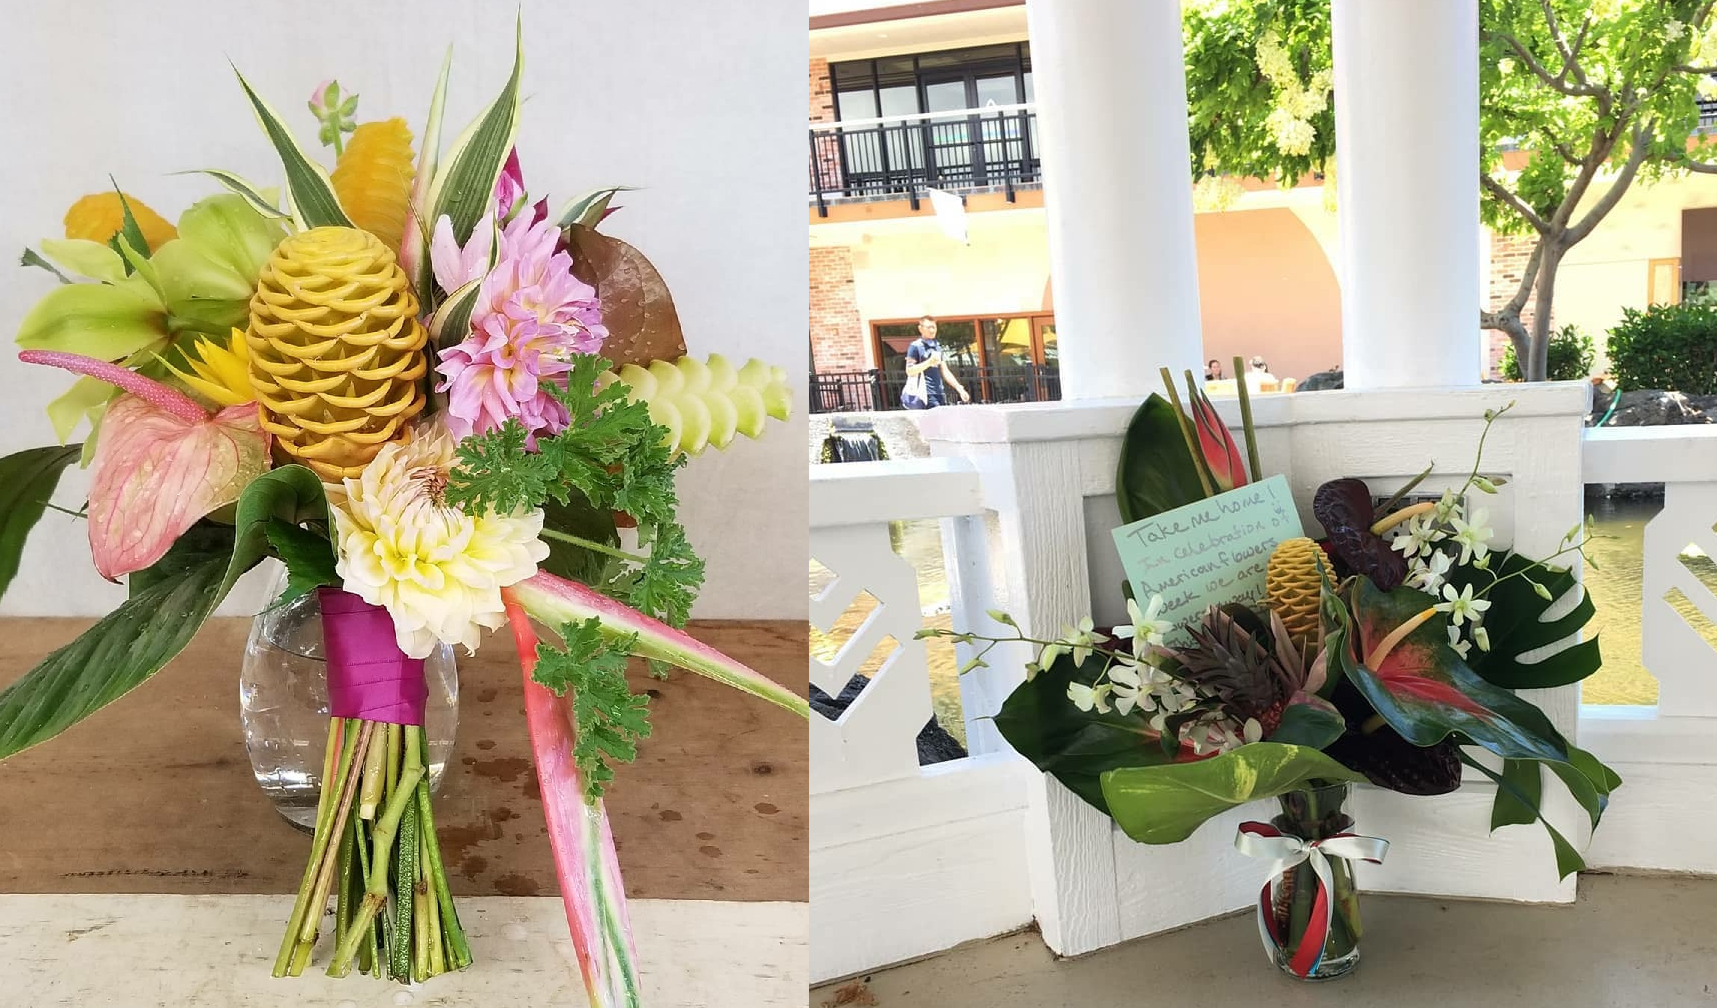 Resources for farmers florists american flowers week these free bouquet of the day arrangements featured locally grown tropical flowers and evoked a cheery summertime feel izmirmasajfo